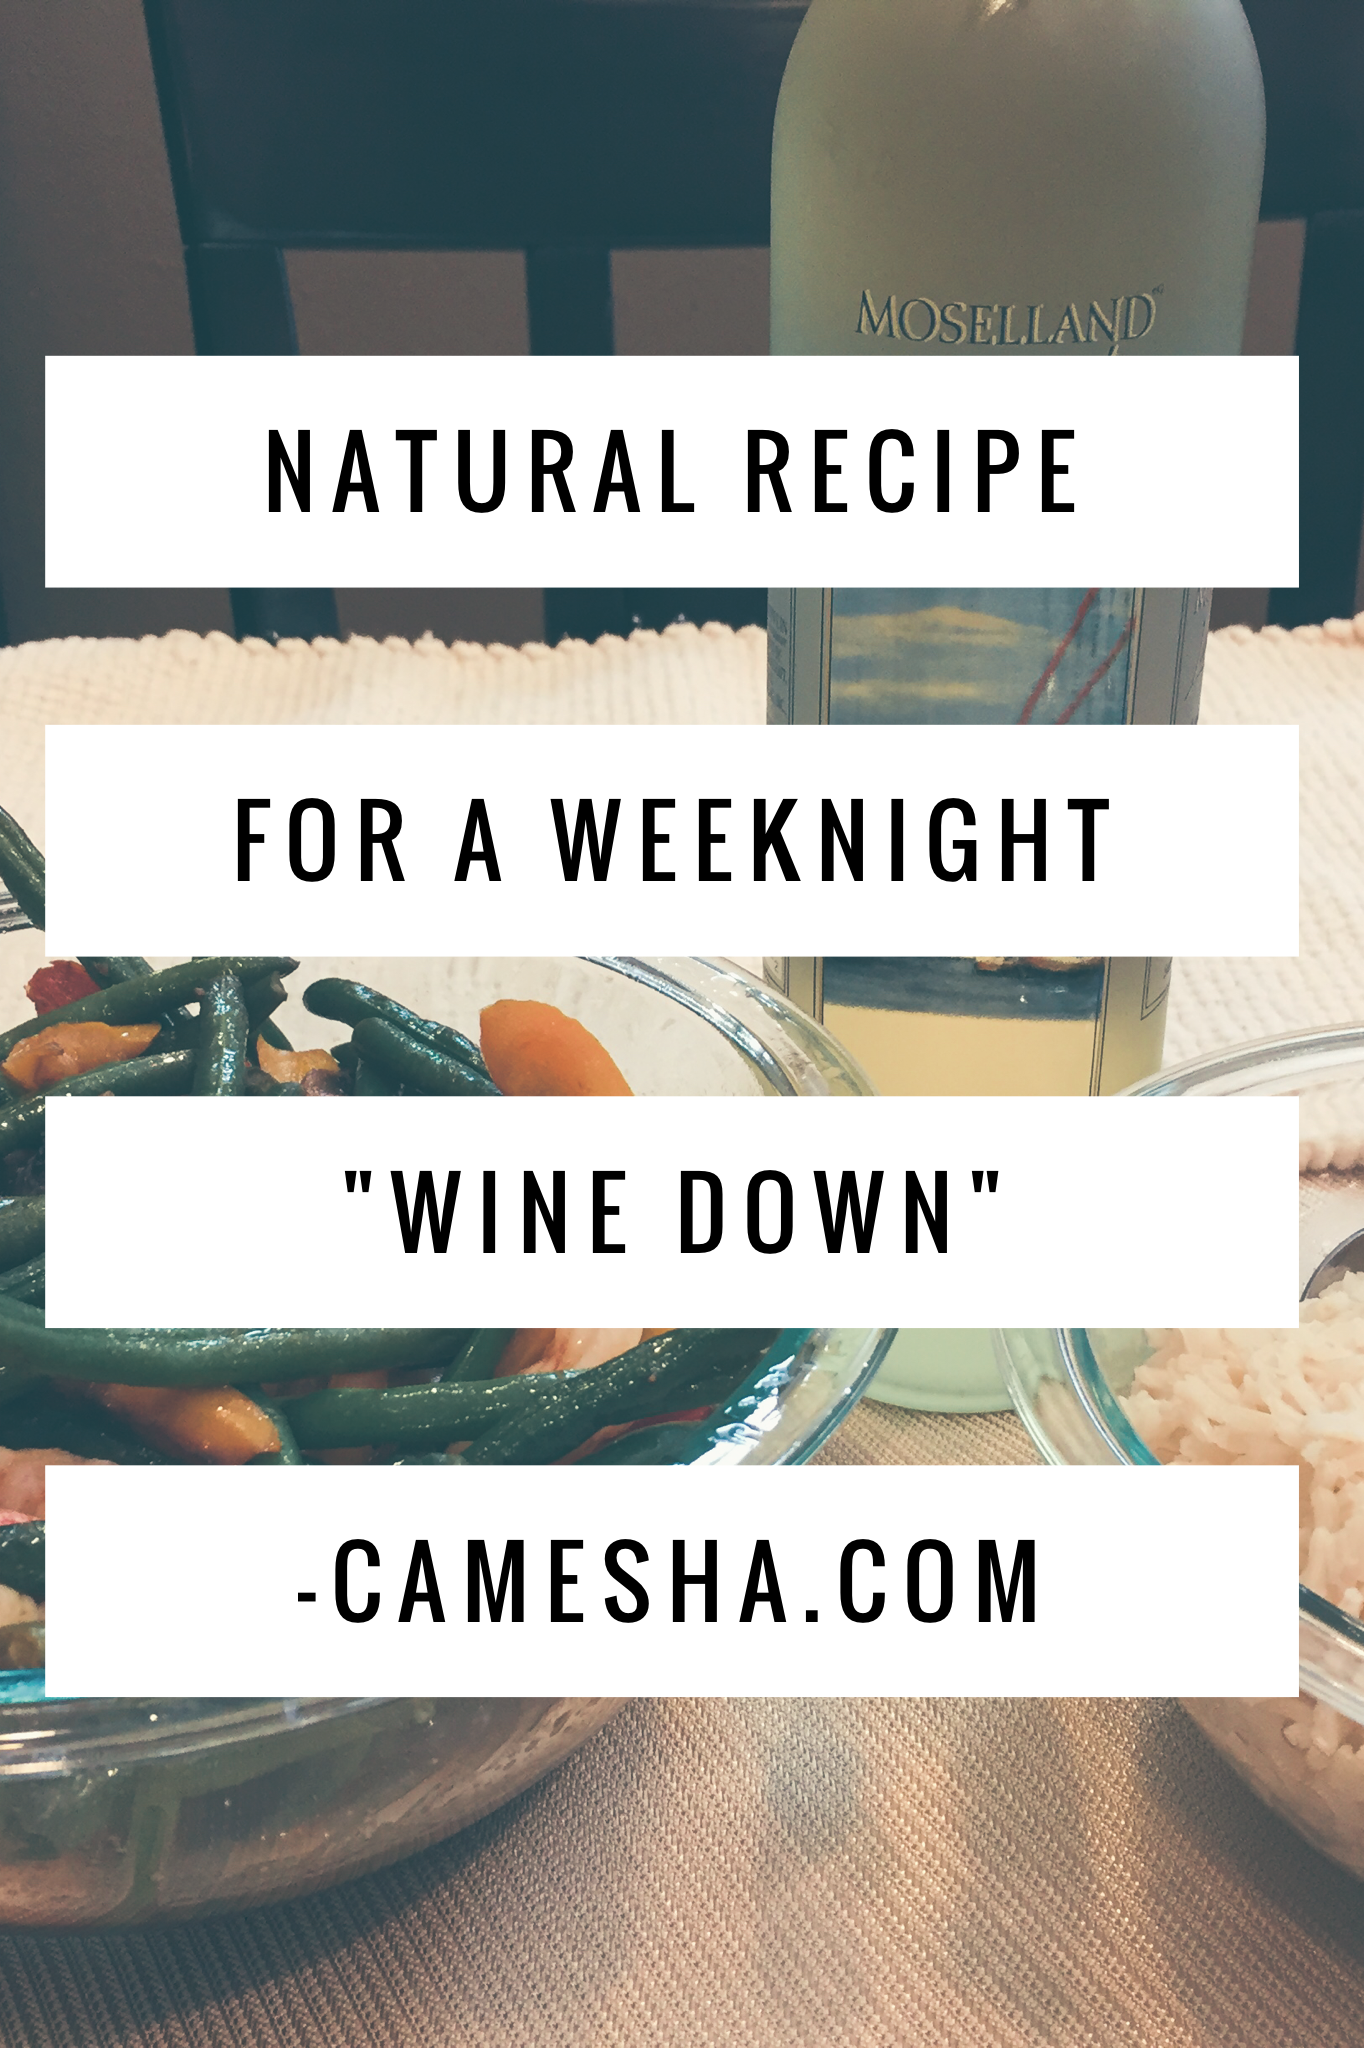 Always on the hunt for natural and organic yummy goodness. Check out this yummy meal for a great way to wine down on a weeknight!